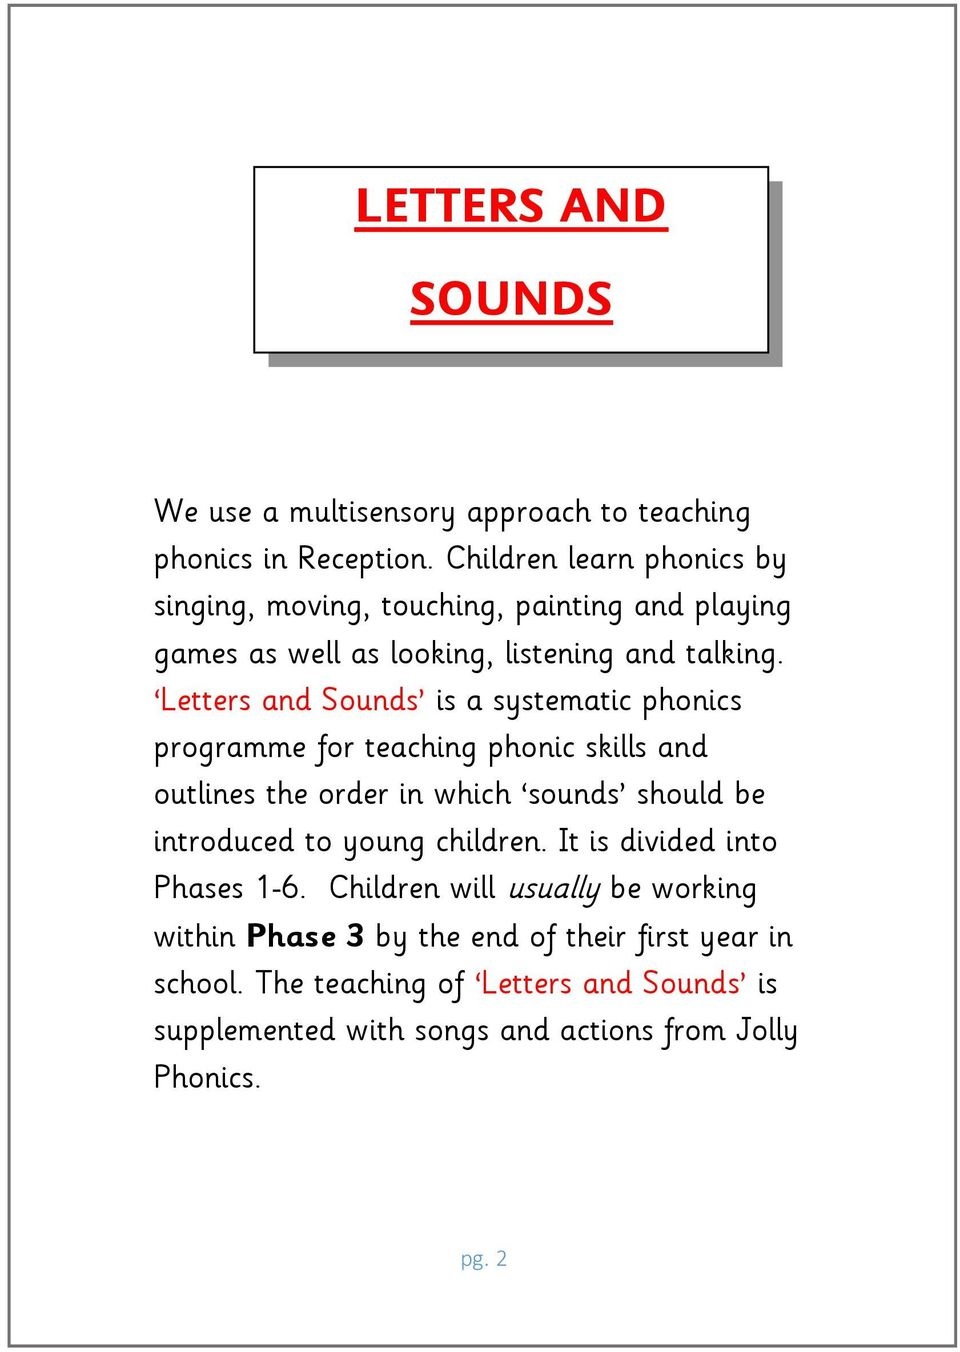 Letters and Sounds is a systematic phonics programme for teaching phonic skills and outlines the order in which sounds should be introduced to